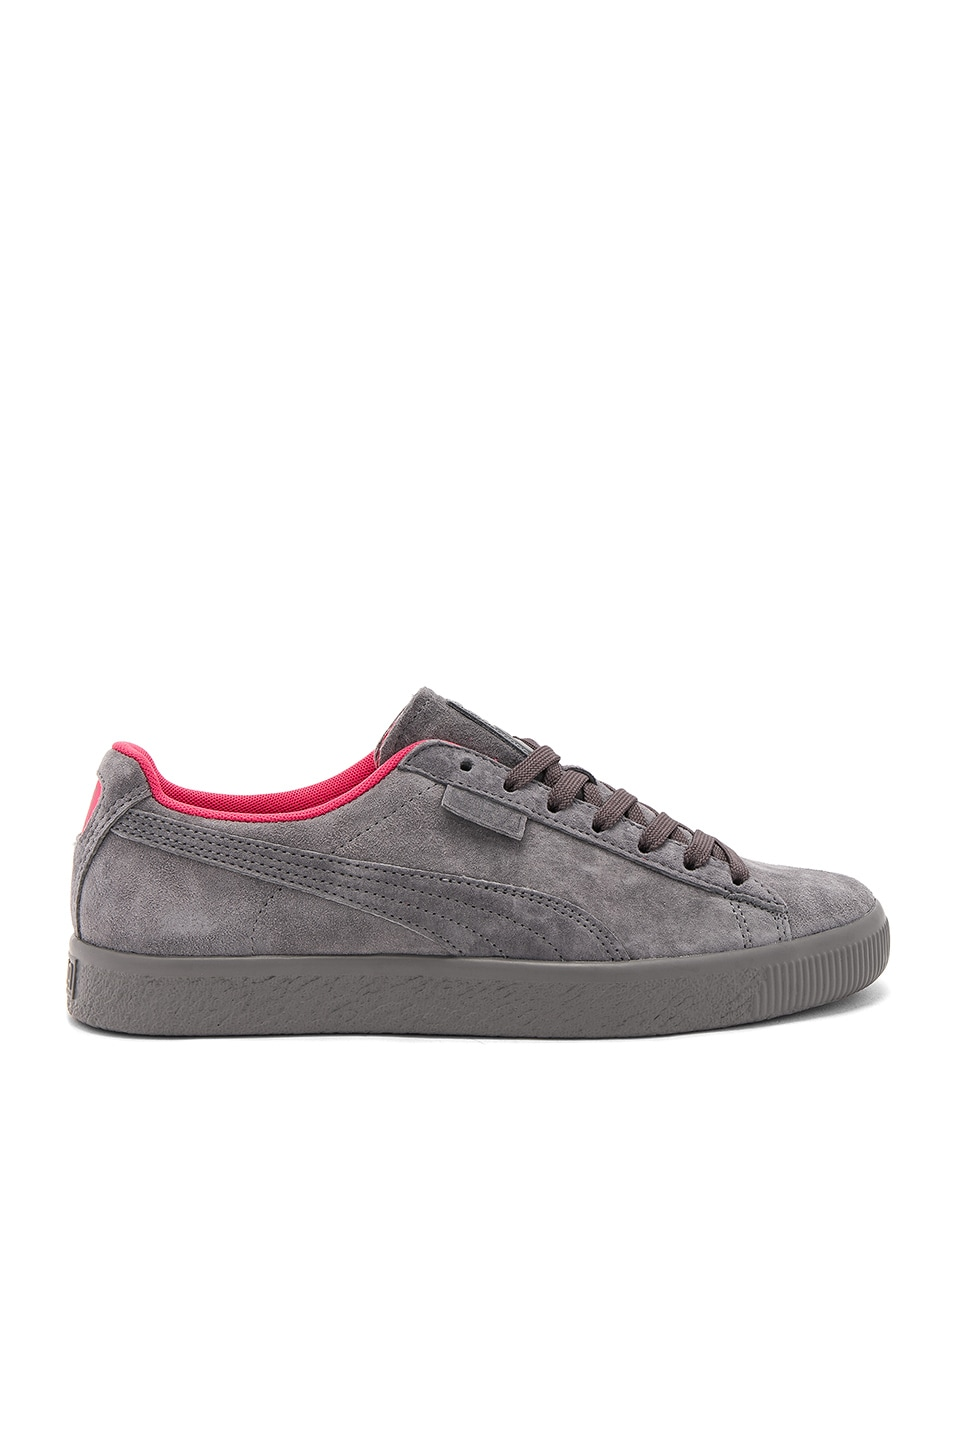 90310f3825d57b Puma X Staple Clyde In Gray